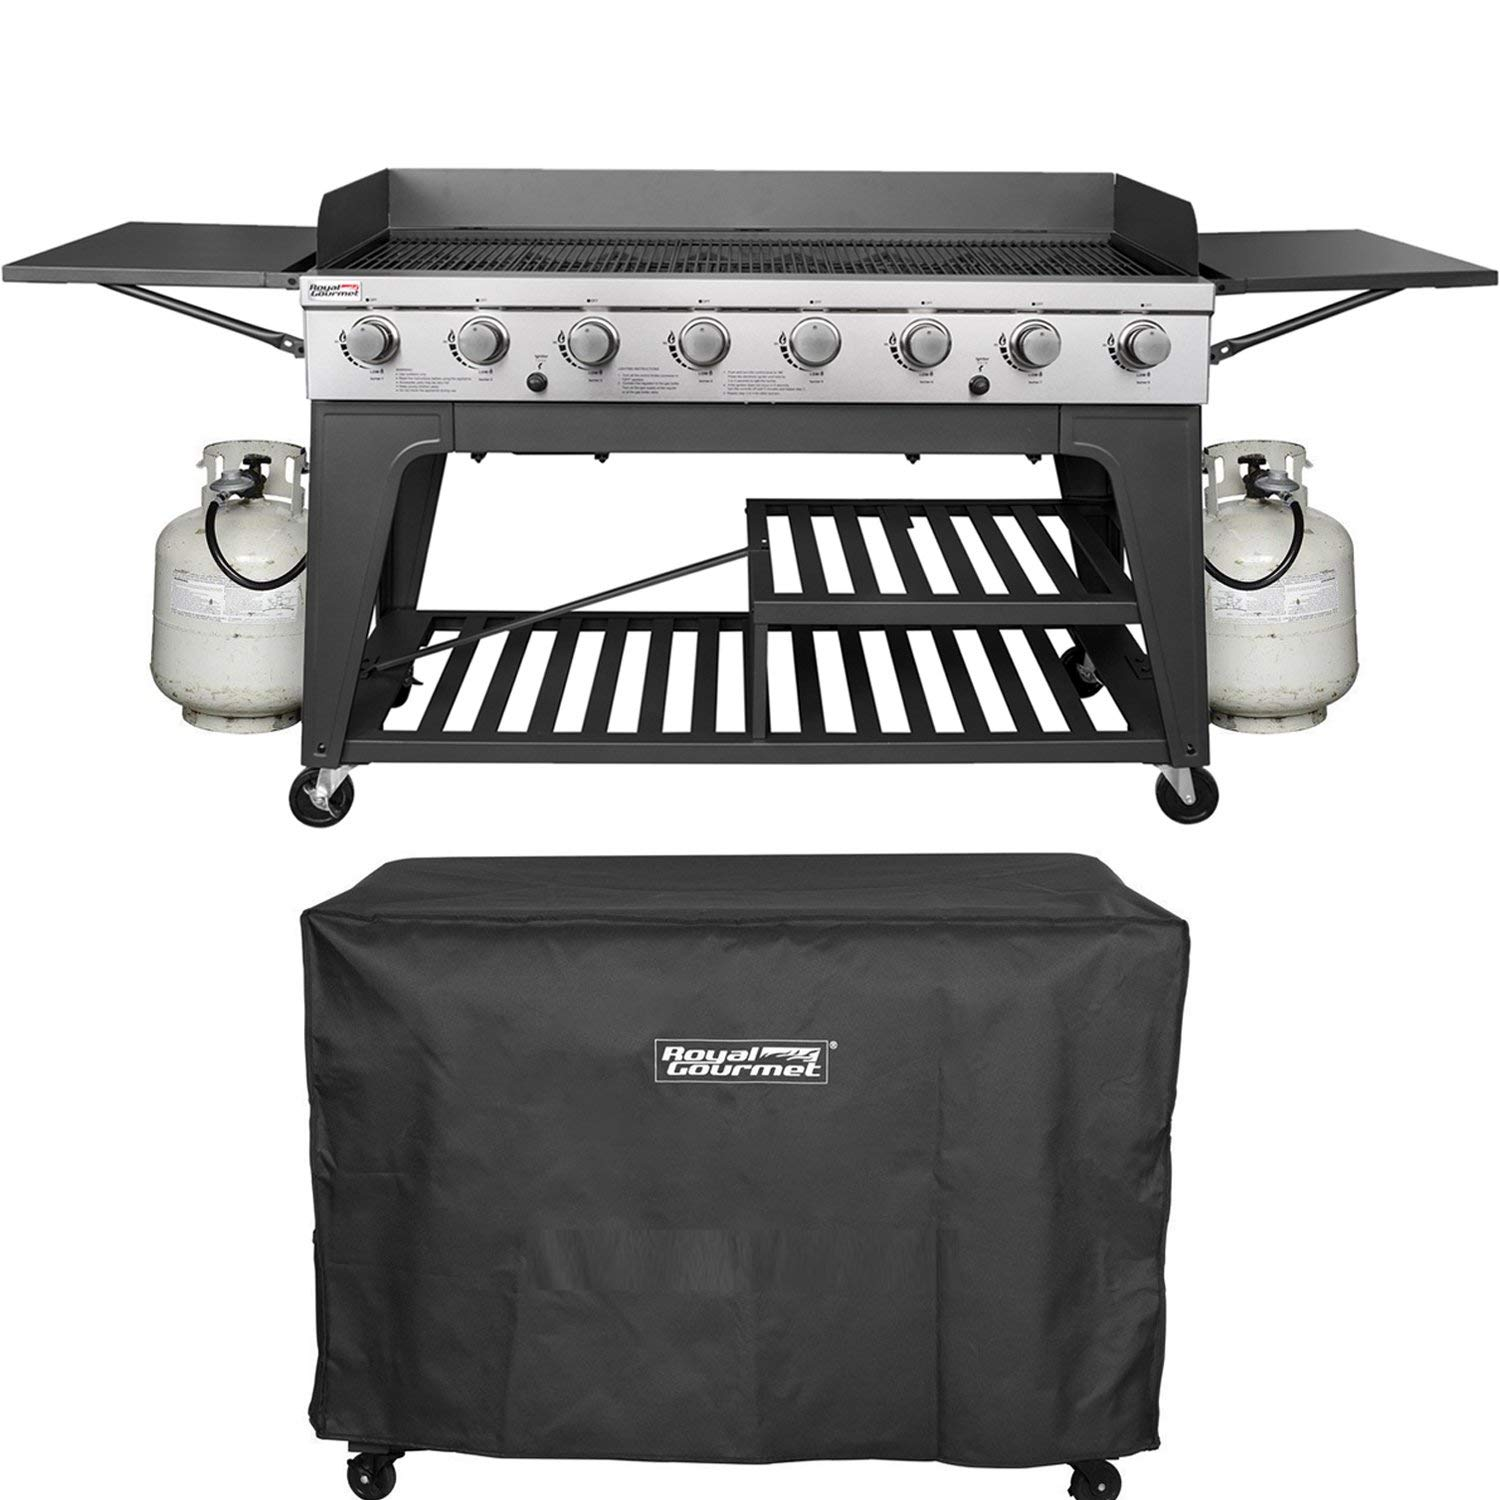 Royal Gourmet GB8000C Event 8-Burner BBQ Propane Gas Grill Review